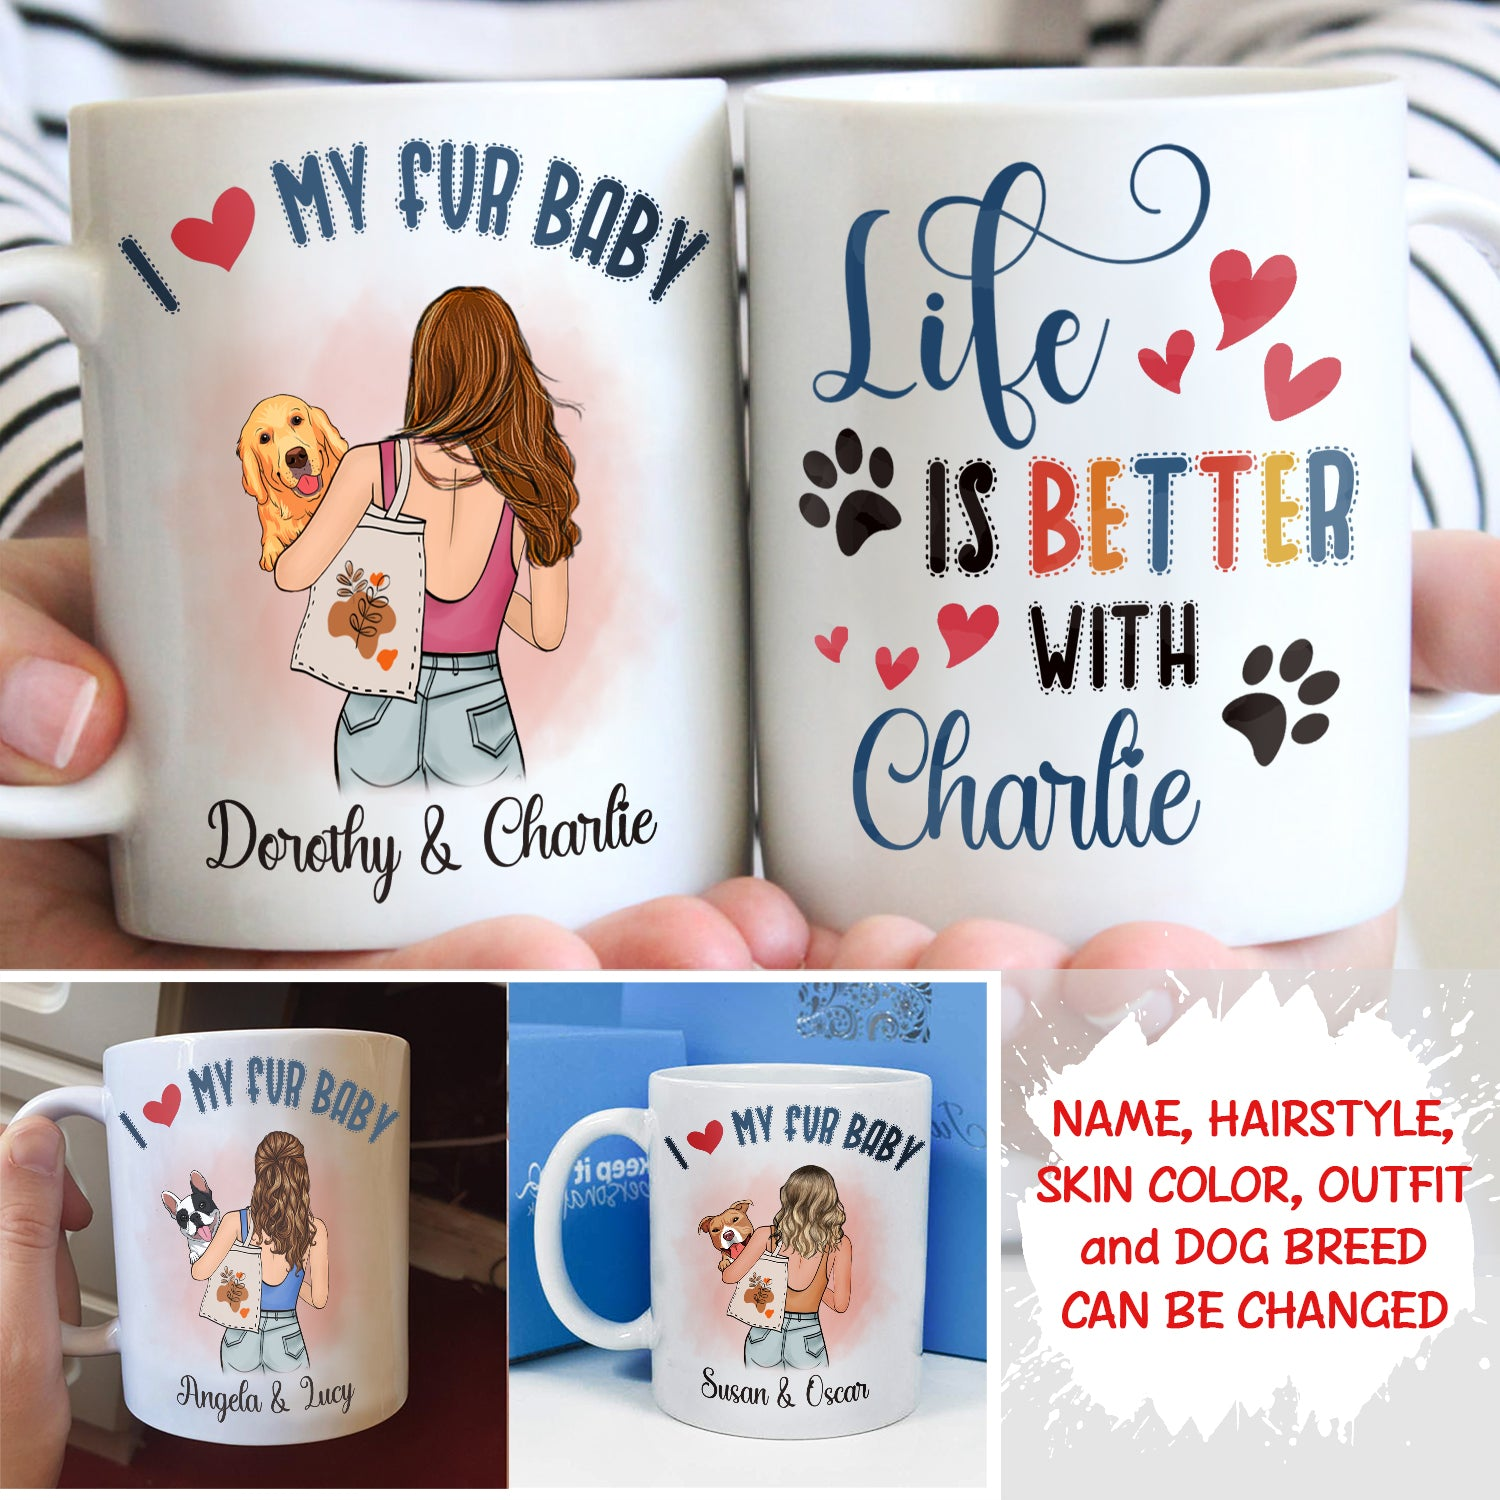 Life is better with dogs - Personalized Custom Coffee Mug